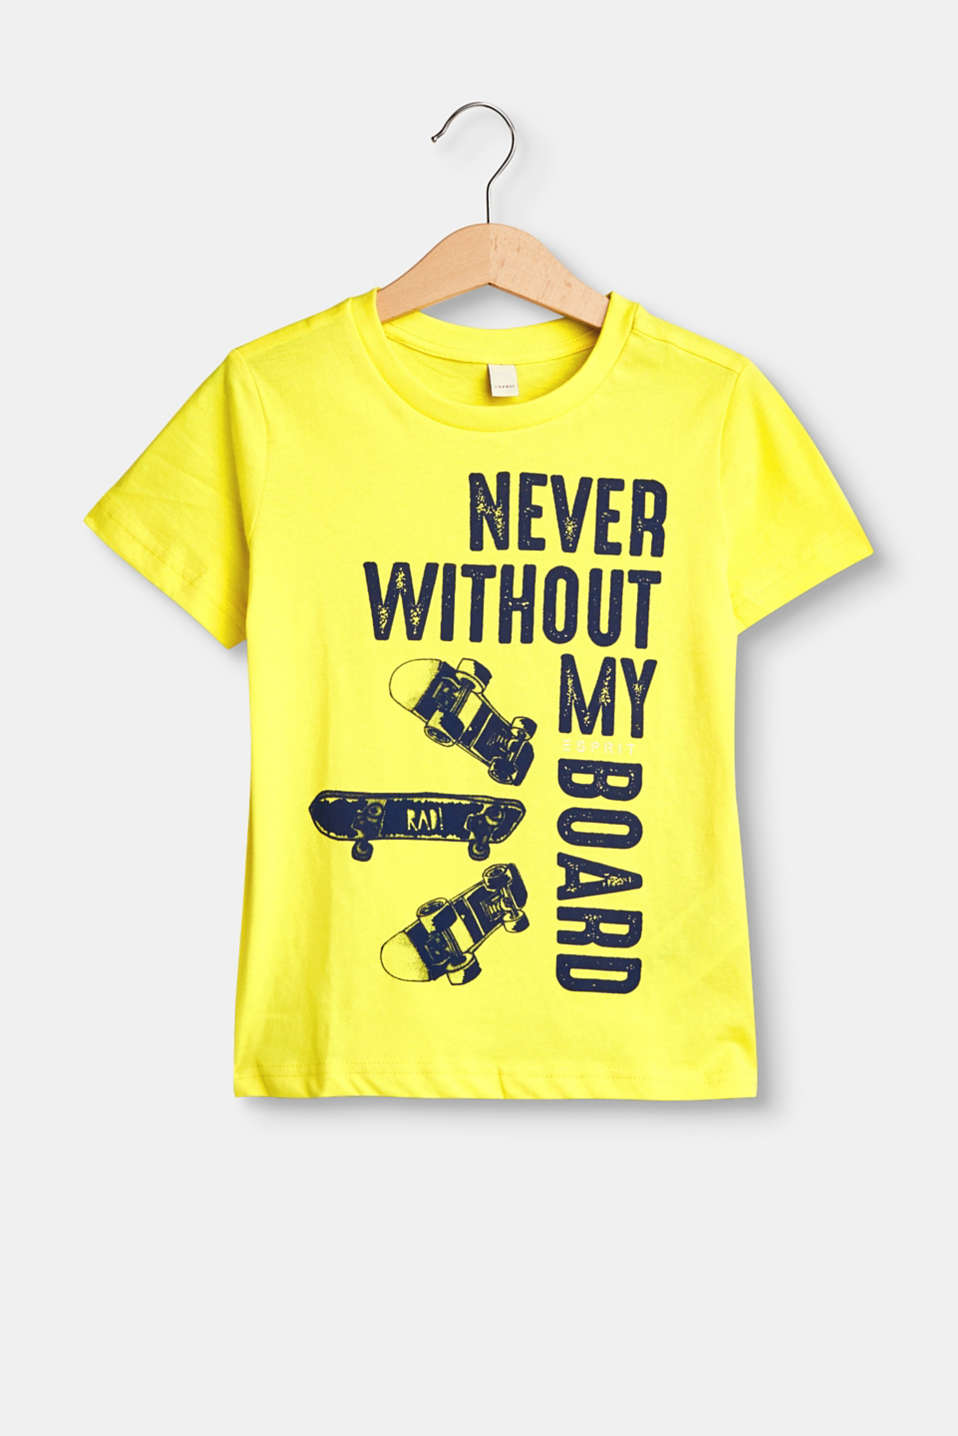 Never without my board: ¡esta camiseta en suave jersey de algodón es ideal para los chicos skater modernos!